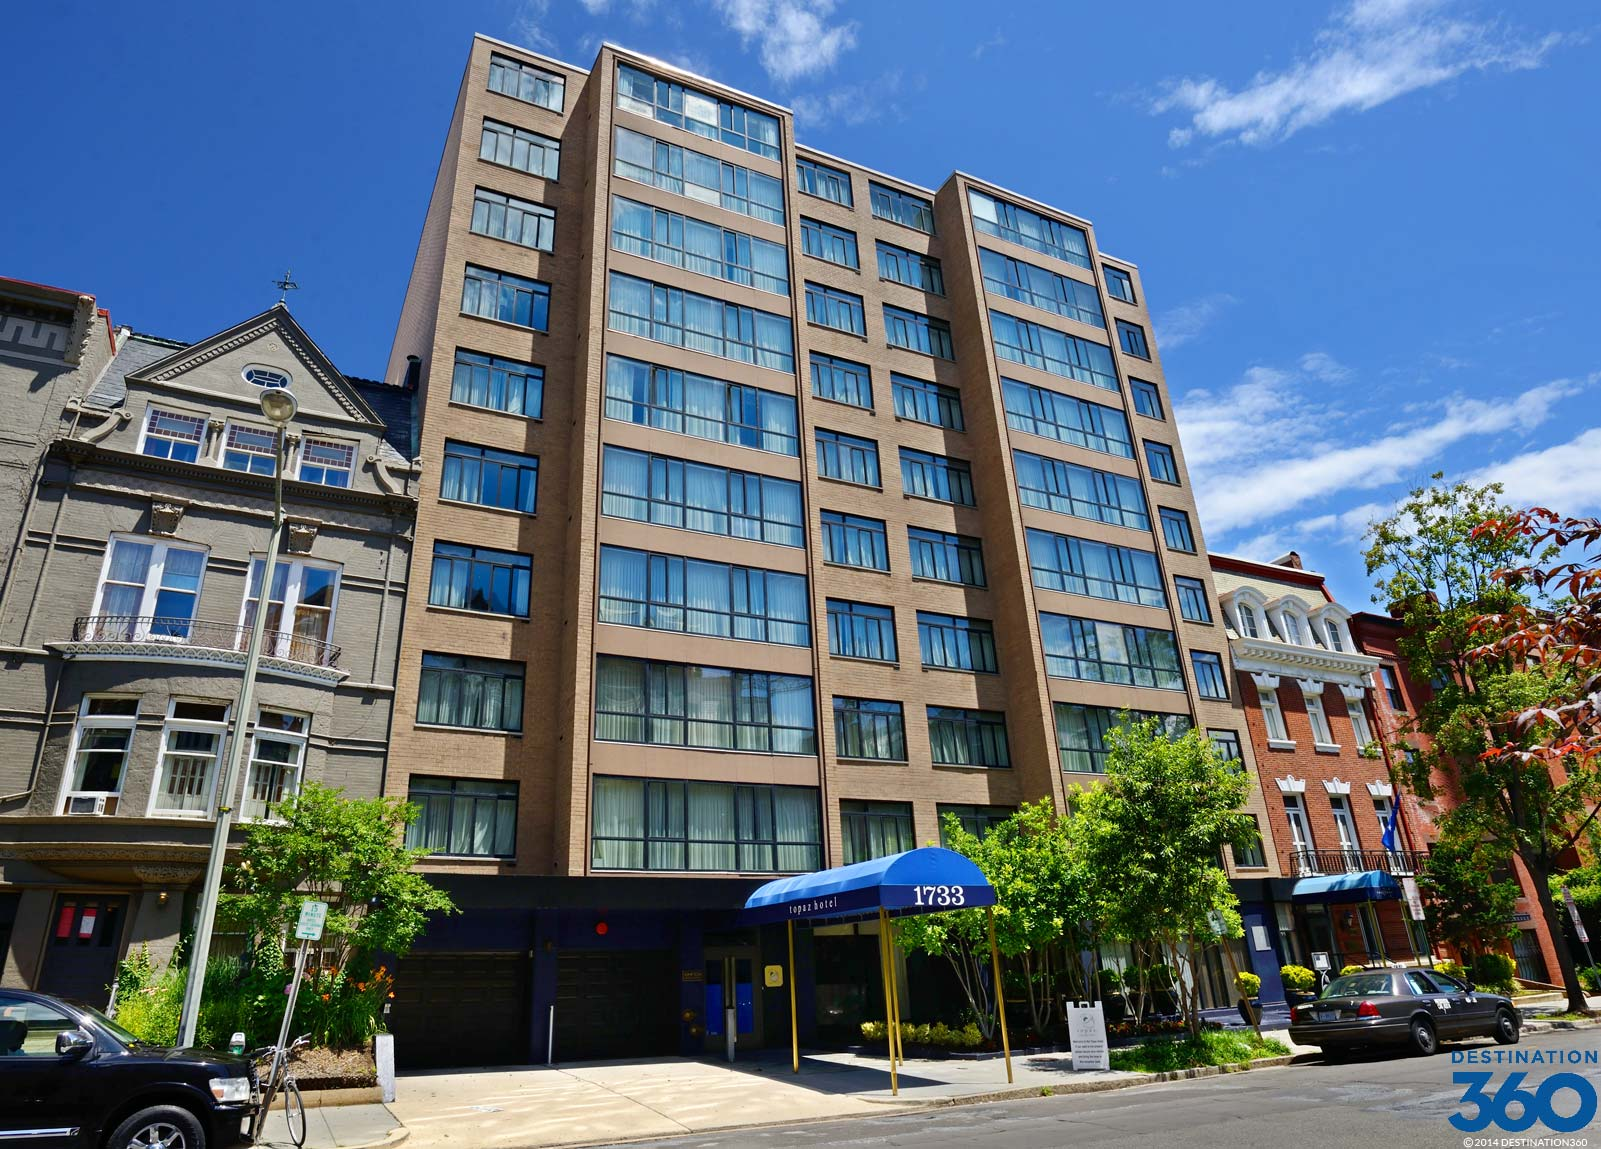 Dupont Circle Washington Dc Hotels Best Dupont Circle Hotels